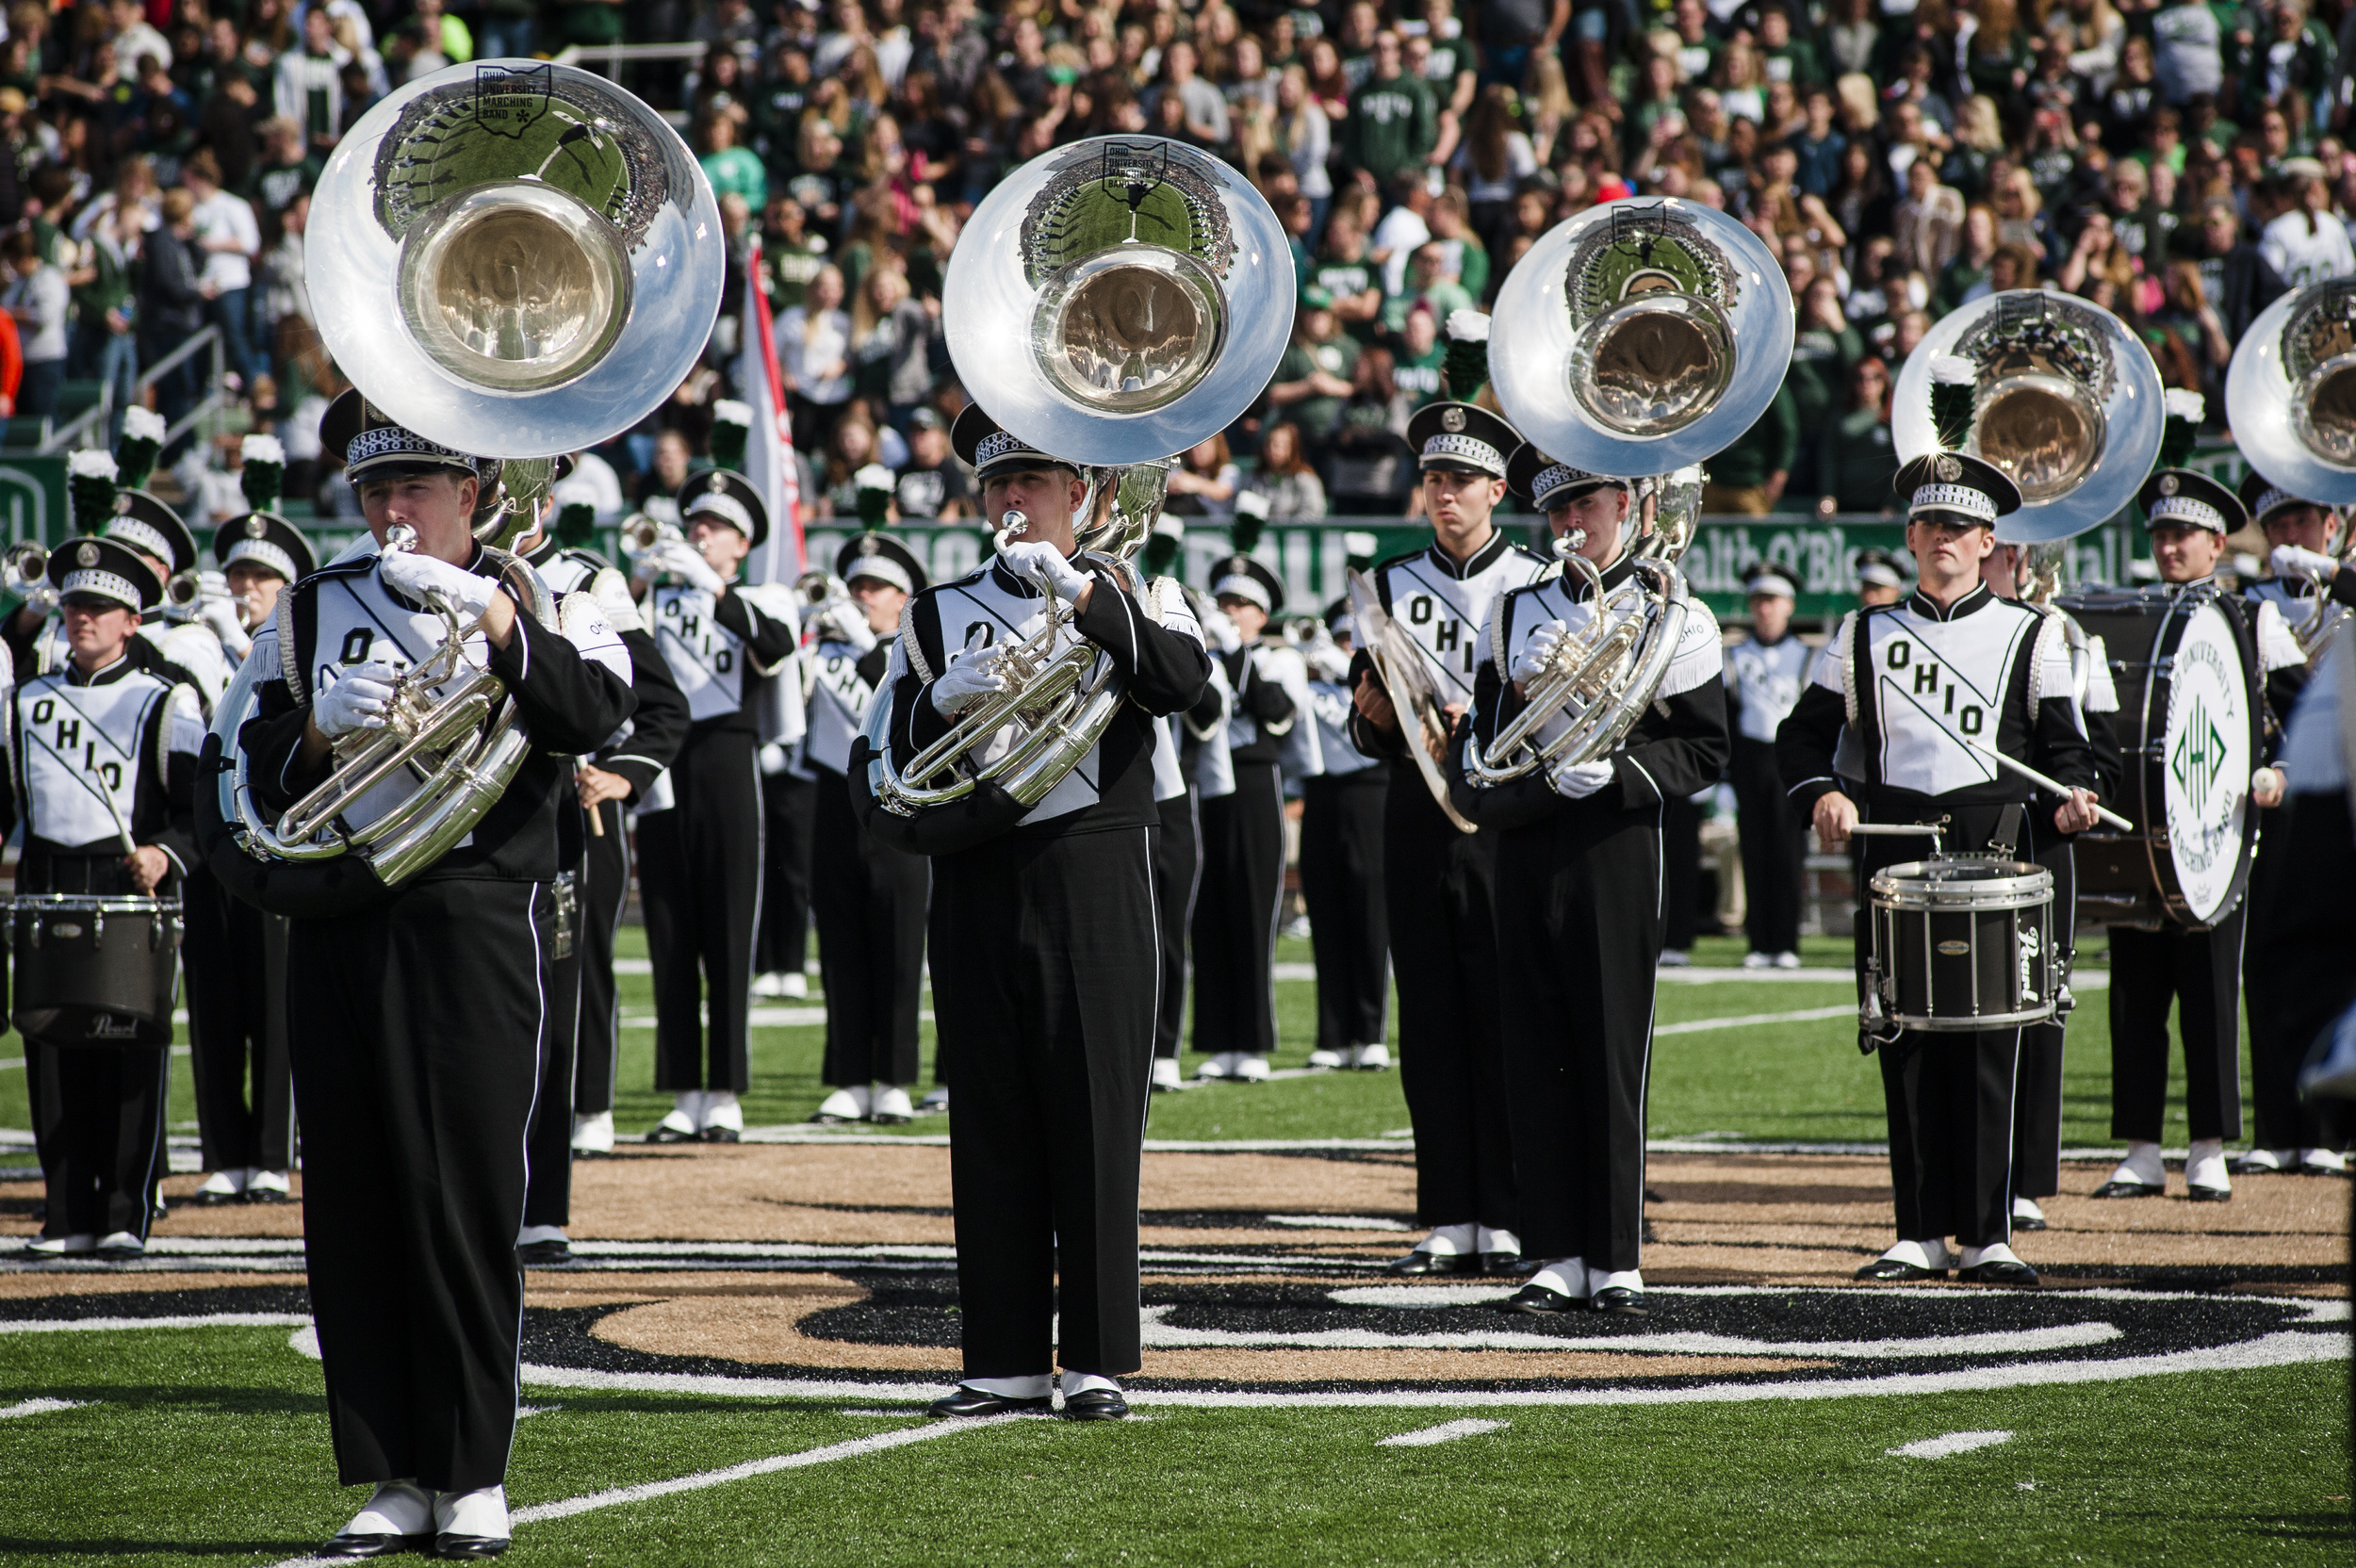 2014-10-11-Homecoming-212-bv.JPG